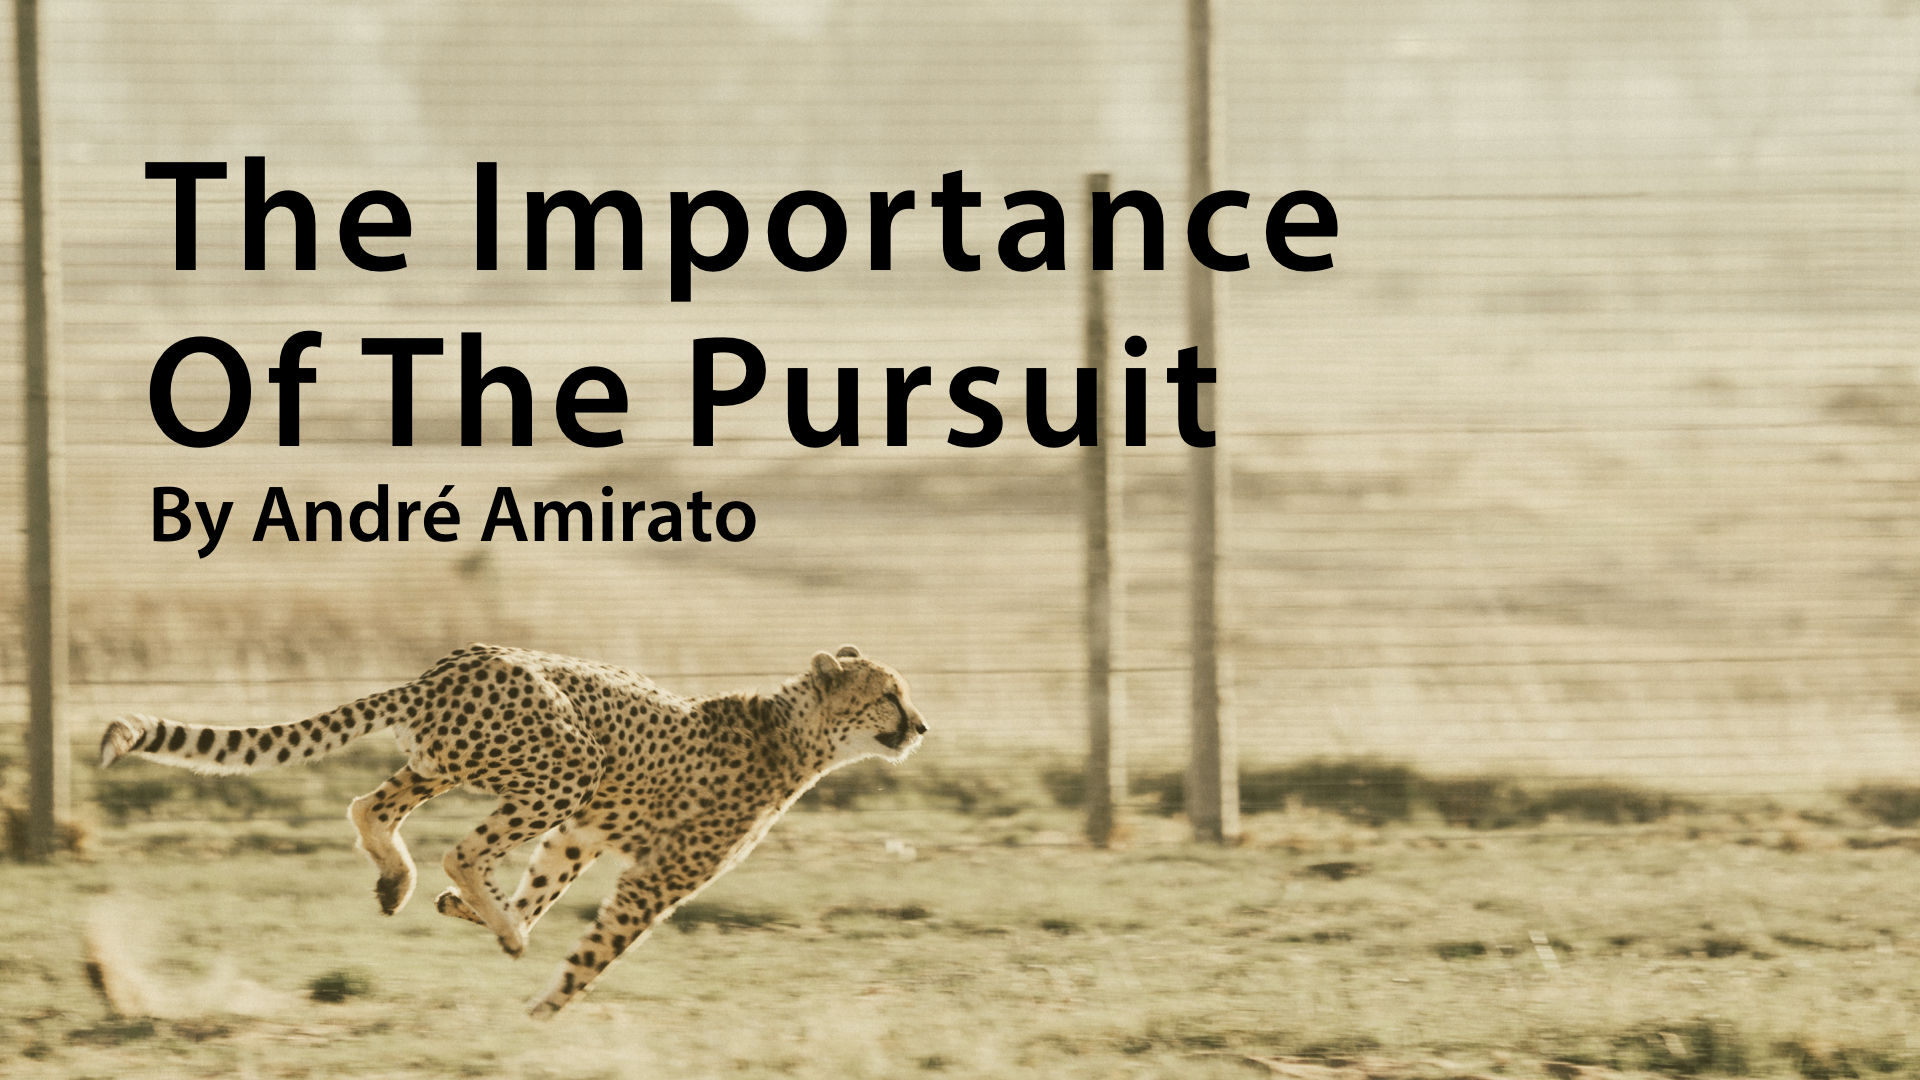 2018-07-08-The-Importance-of-the-Pursuit-title-slide.jpeg